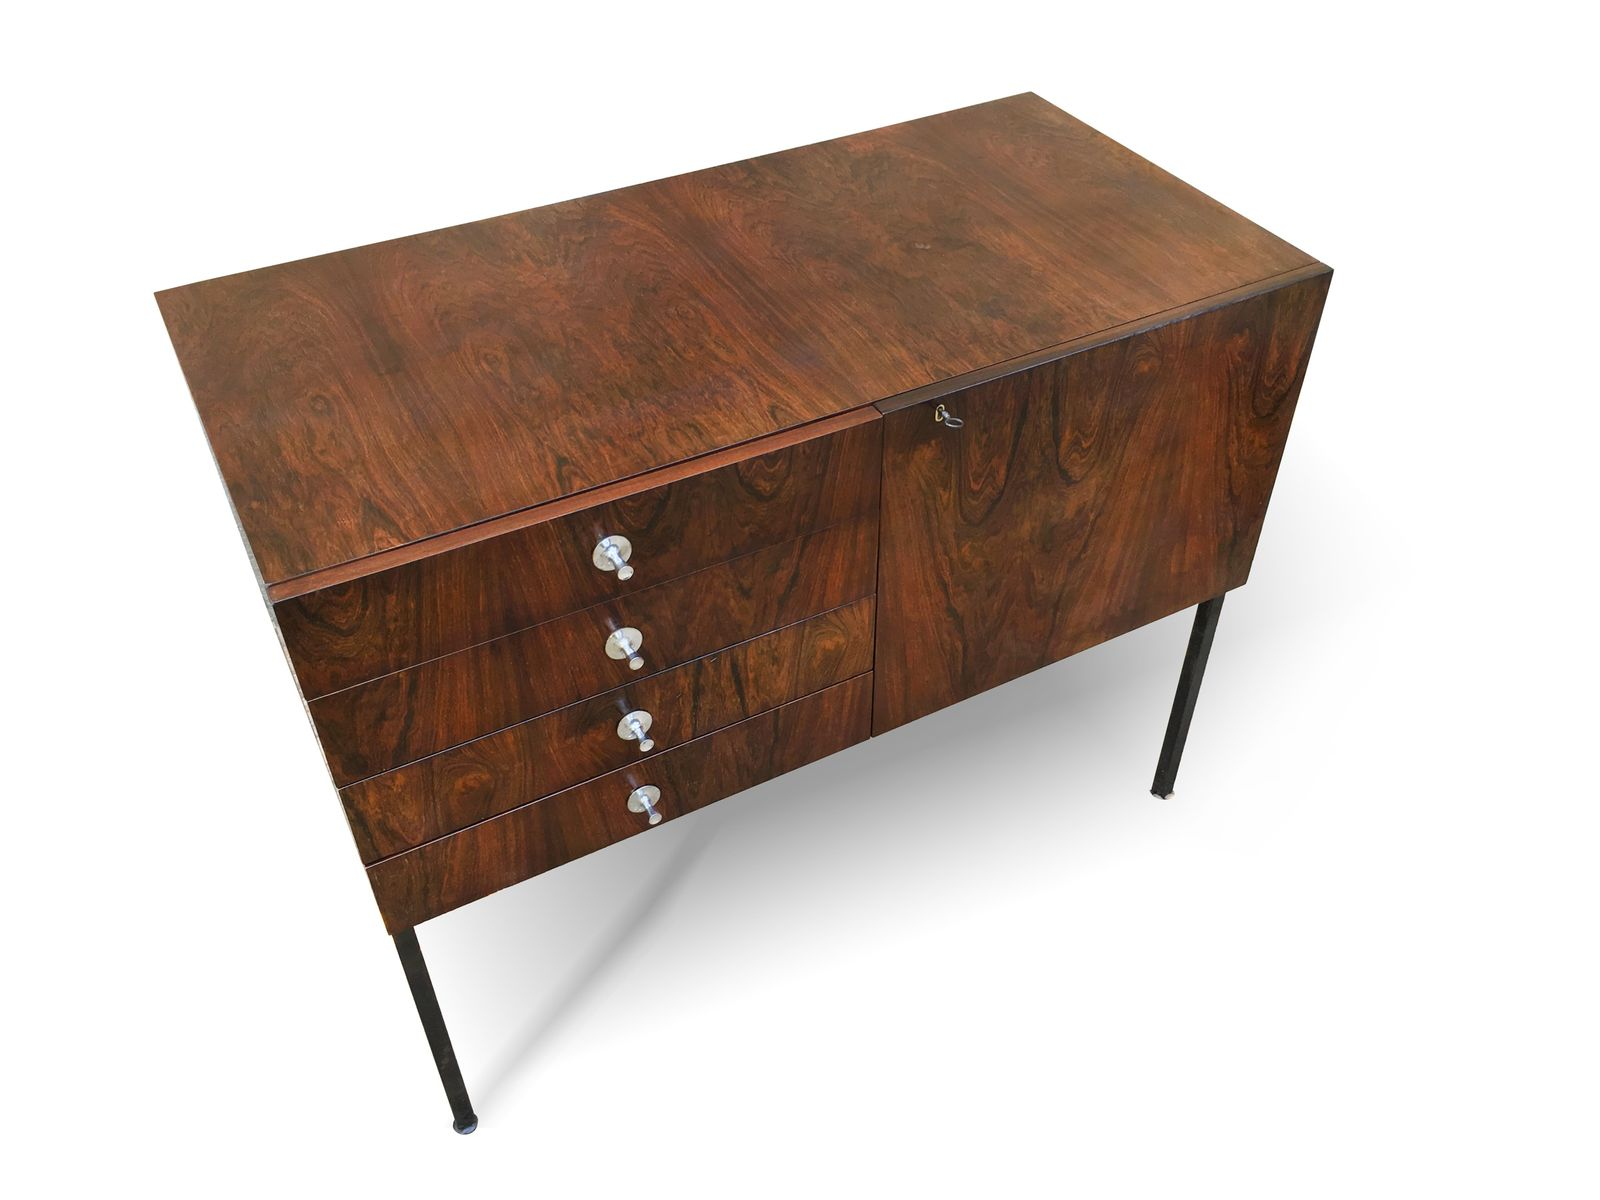 vintage sideboard 800 von alain richard f r meubles tv bei pamono kaufen. Black Bedroom Furniture Sets. Home Design Ideas